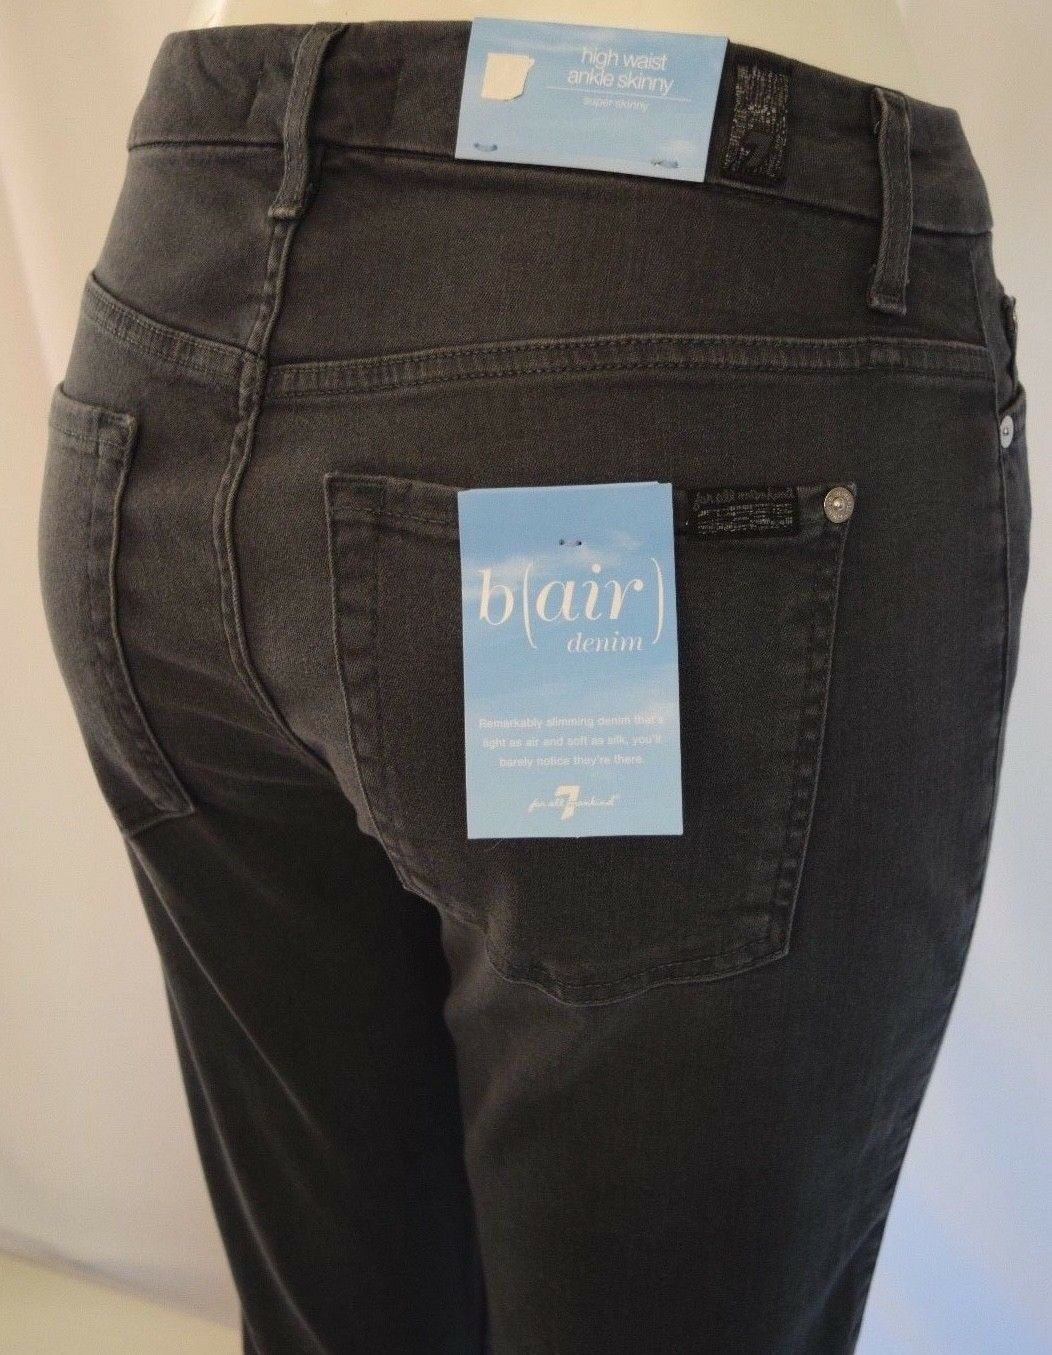 Seven 7 For All Mankind HIGH WAIST ANKLE SKINNY b)air Jean Woman 25 SMOKE grey